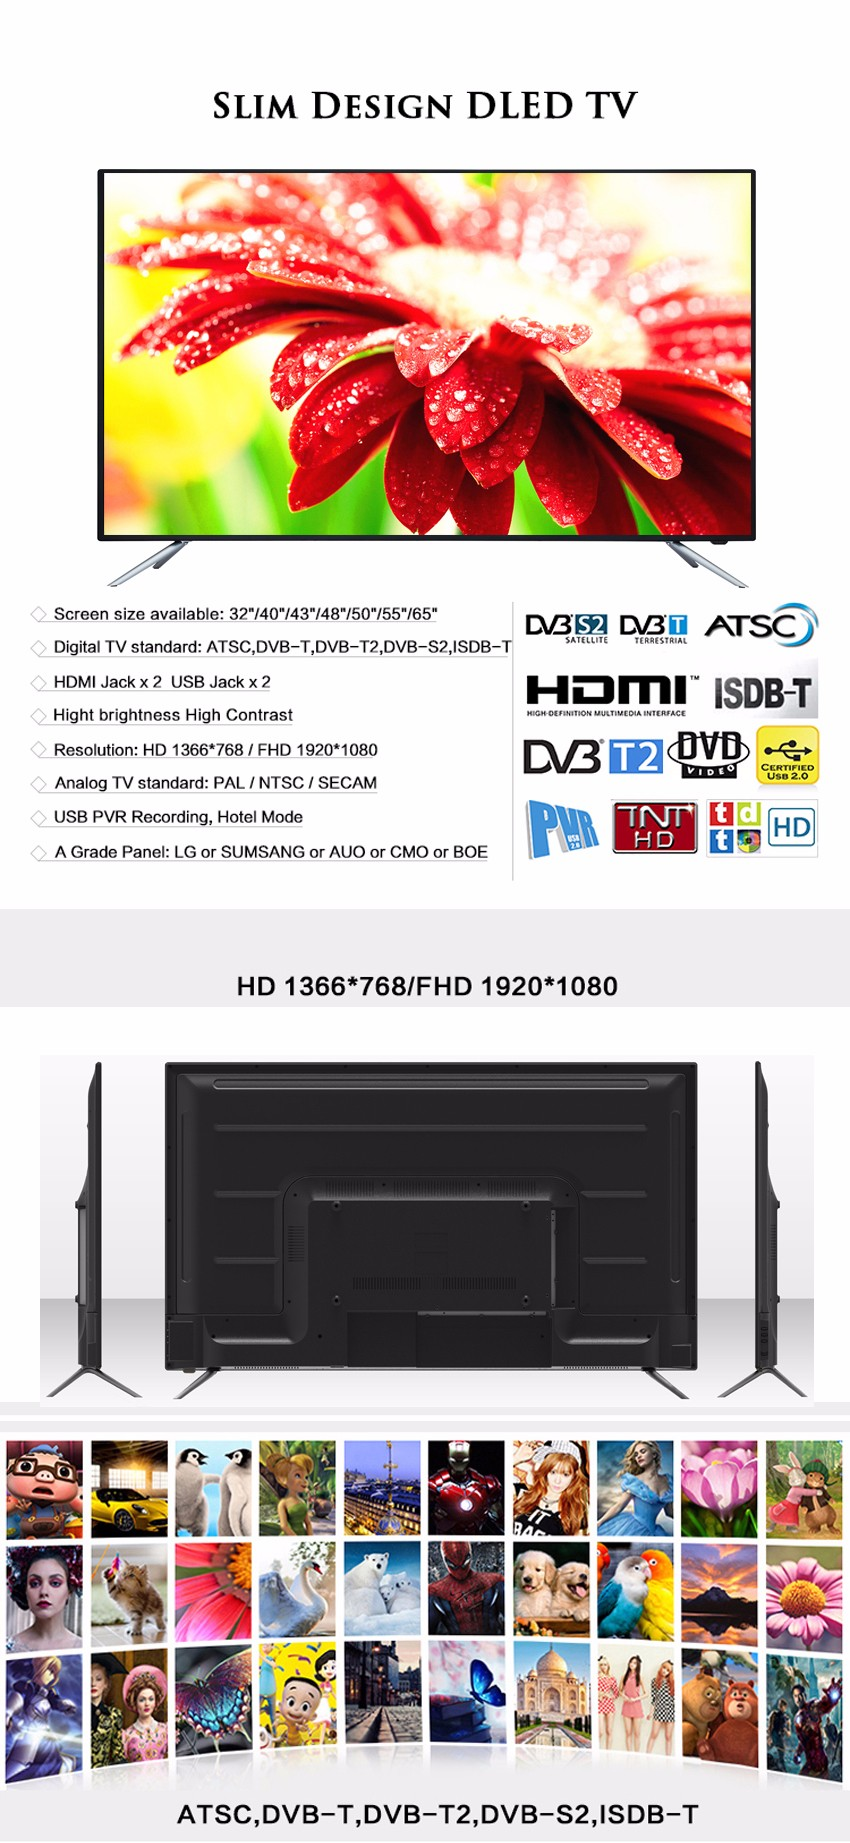 Hot China Hd Video Tv Www Xxx,Best Flat Screen Hd 32 55 65 Inch ...